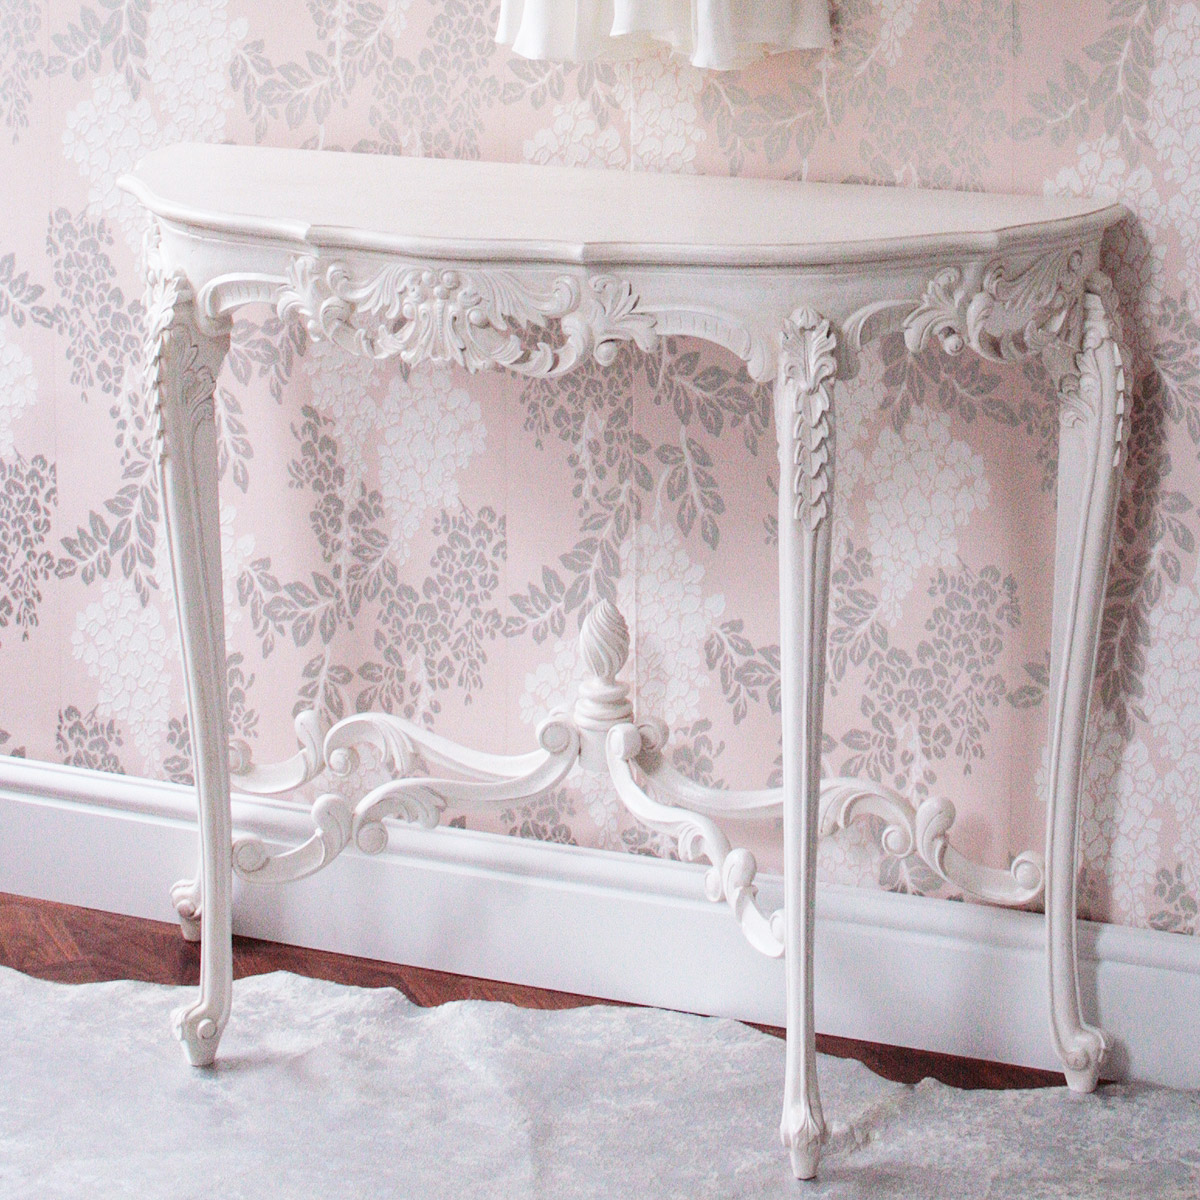 Console Tables Are Perfect For Placing In Any Room photo - 6